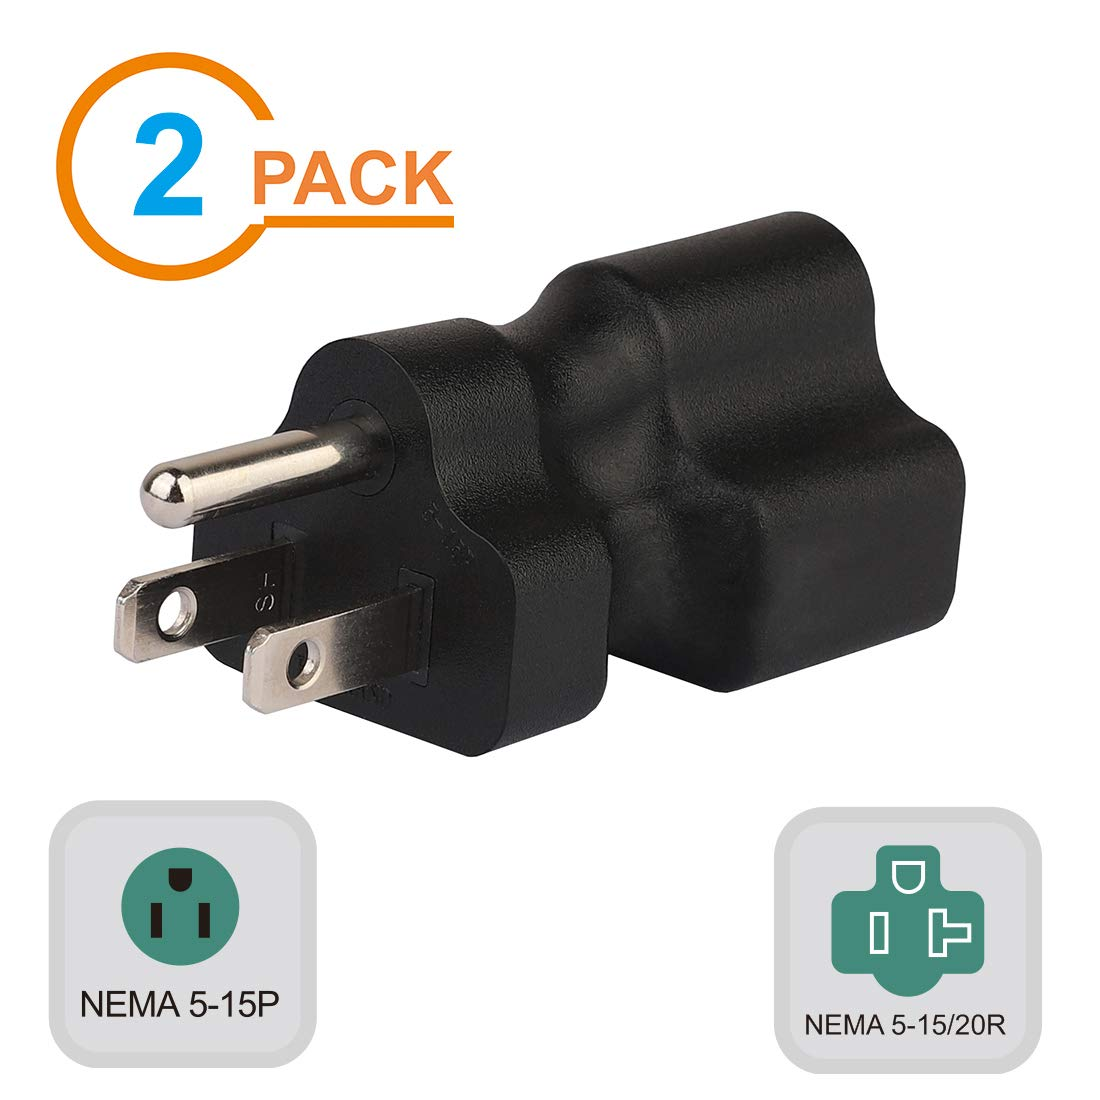 3 3PACK PA-0201-3 Plugrand 15 Amp Household AC Plug to 20 Amp T Blade Power Adapter,15 Amp to 20 Amp Plug Adapter Converter Nema 5-15P to 5-15R//5-20R 20 Amp Comb AC Adapter